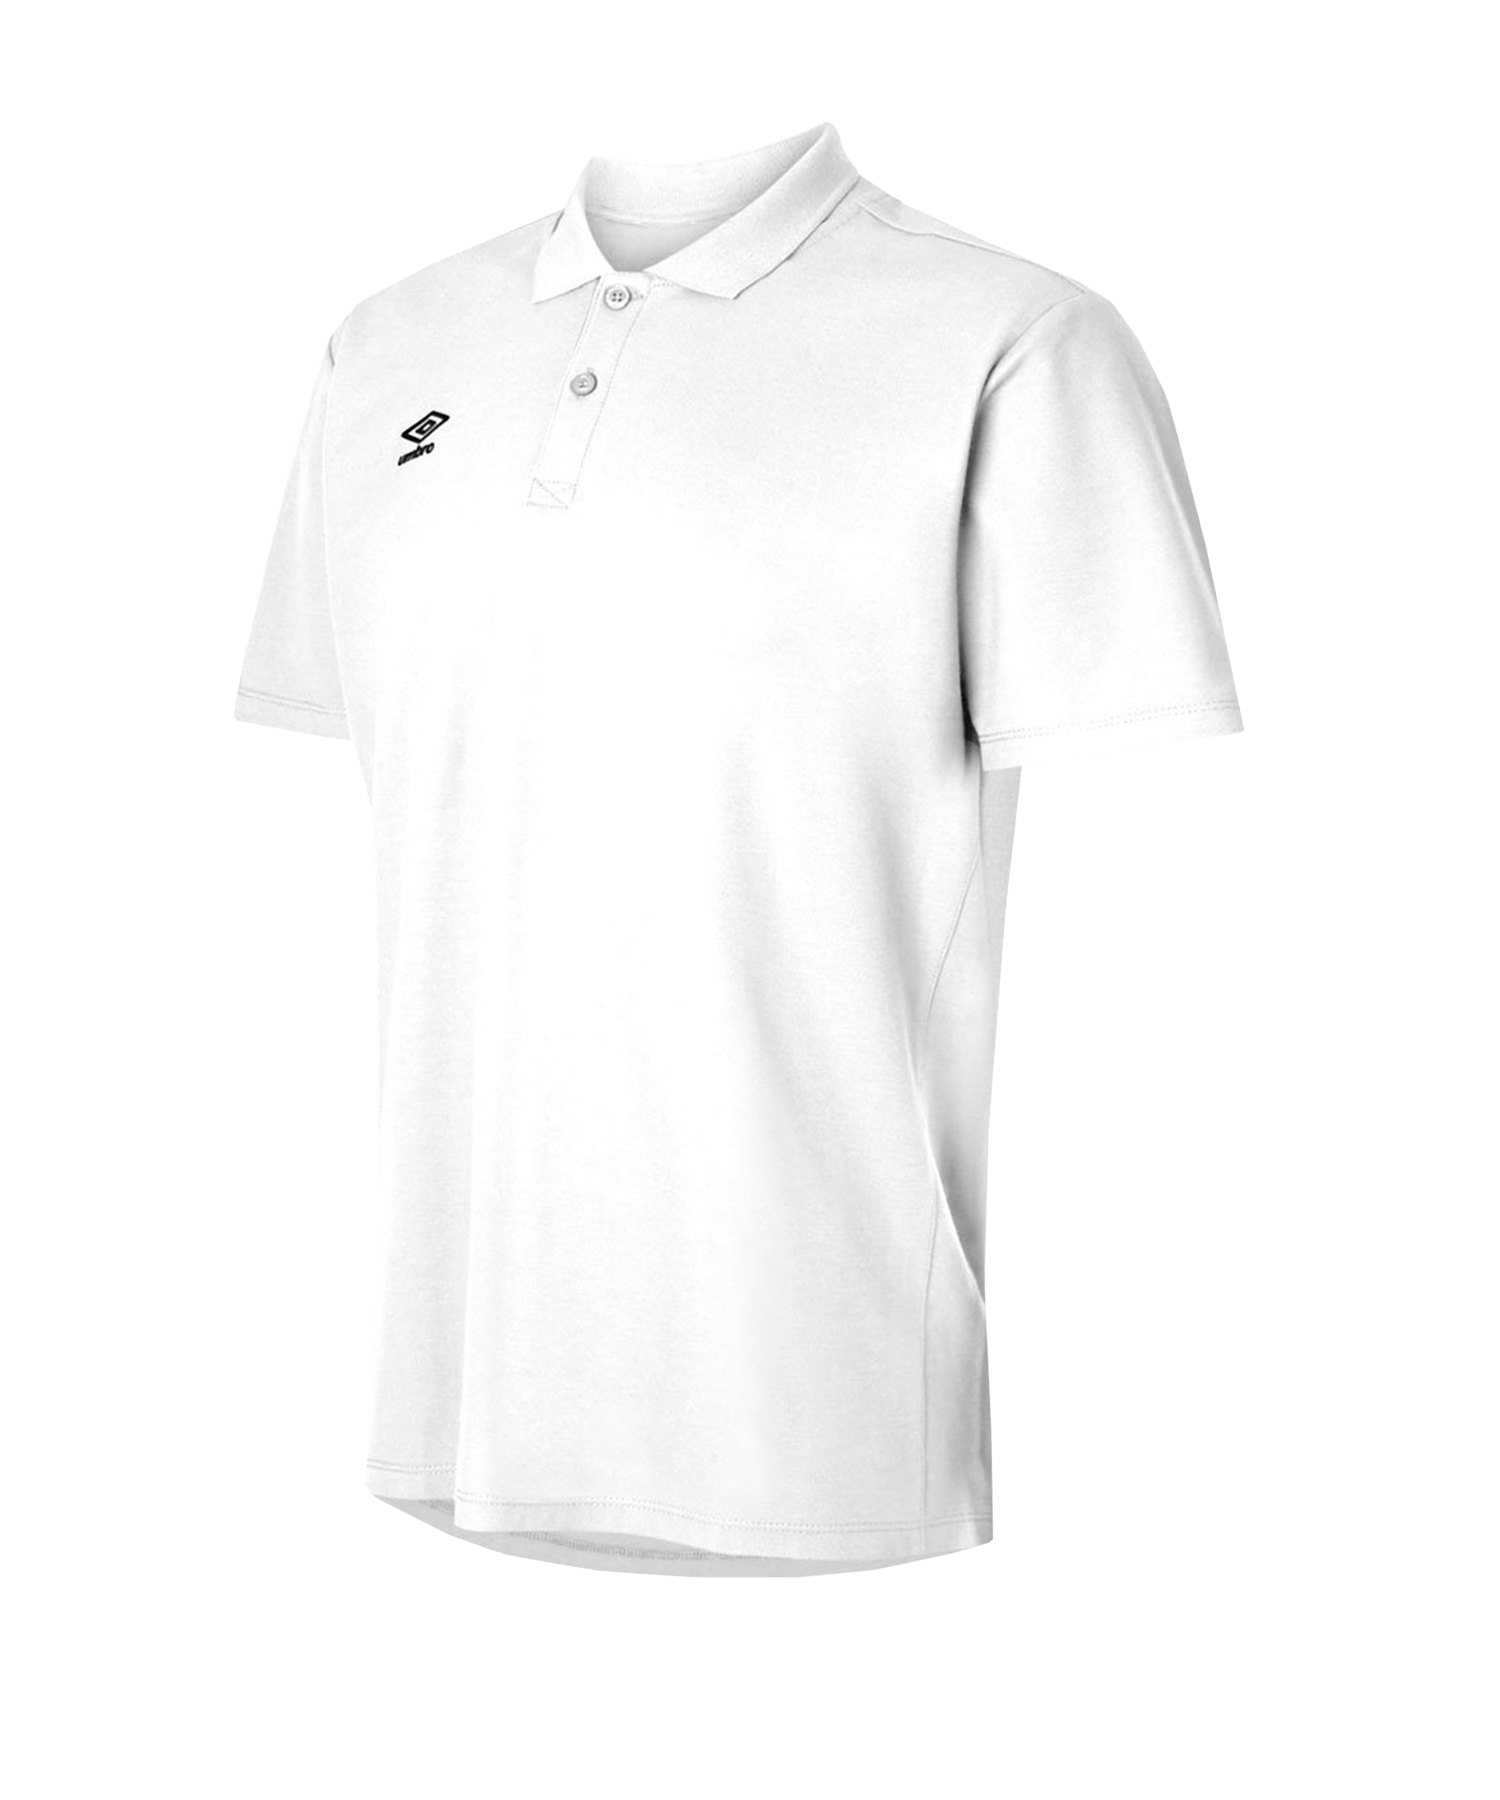 Umbro Club Essential Polo Shirt Weiss F096 - Weiss